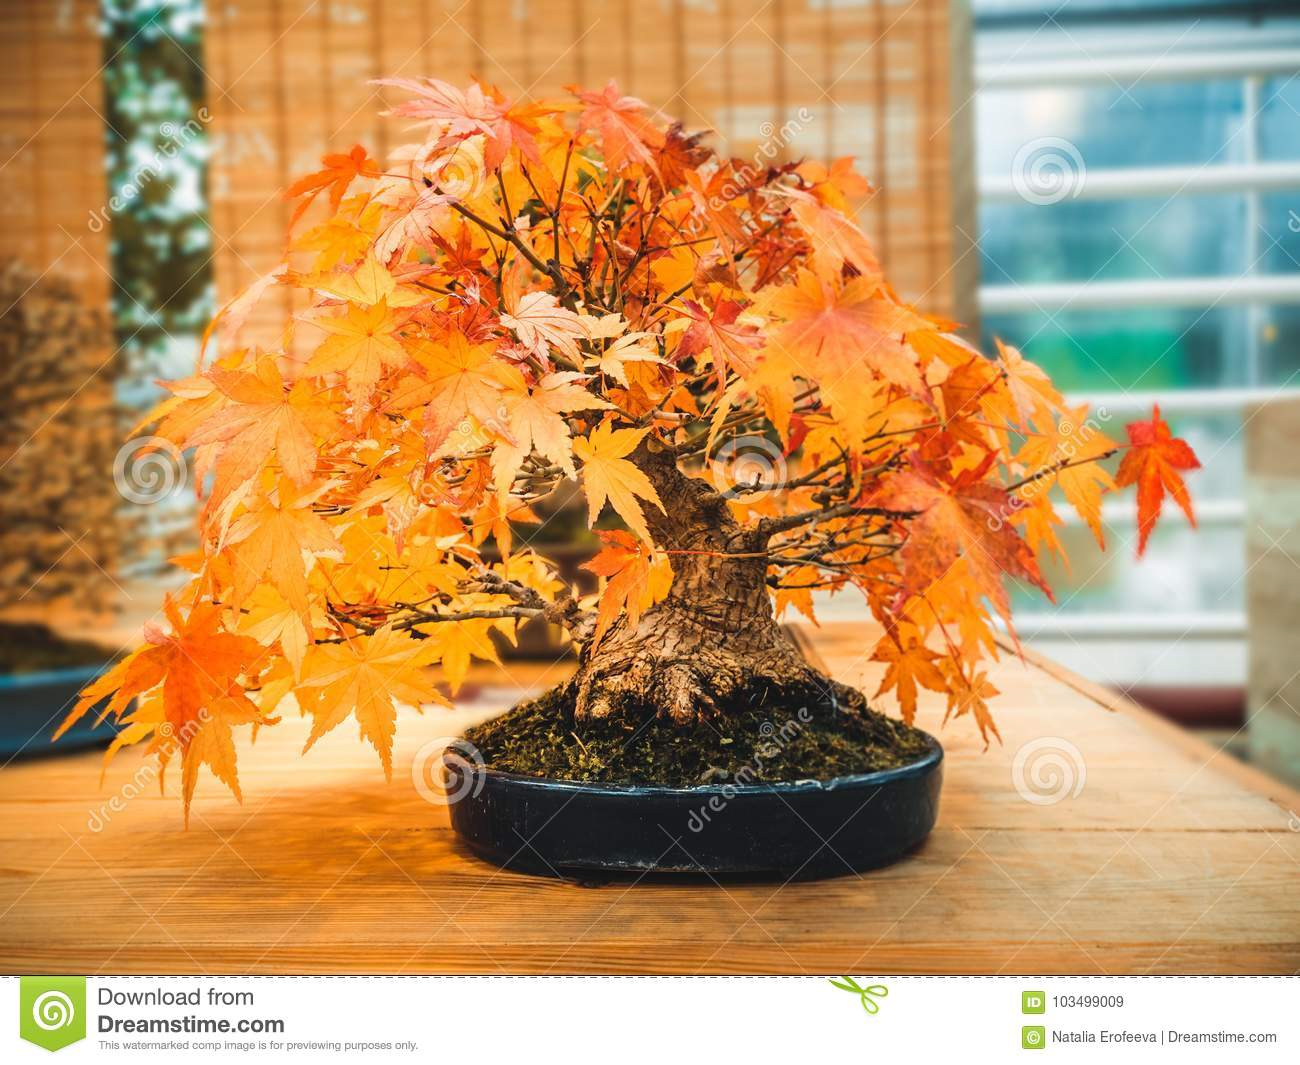 Red Scarlet Bonsai Maple Tree Acer Palmatum Bonsai Tree Of Trident